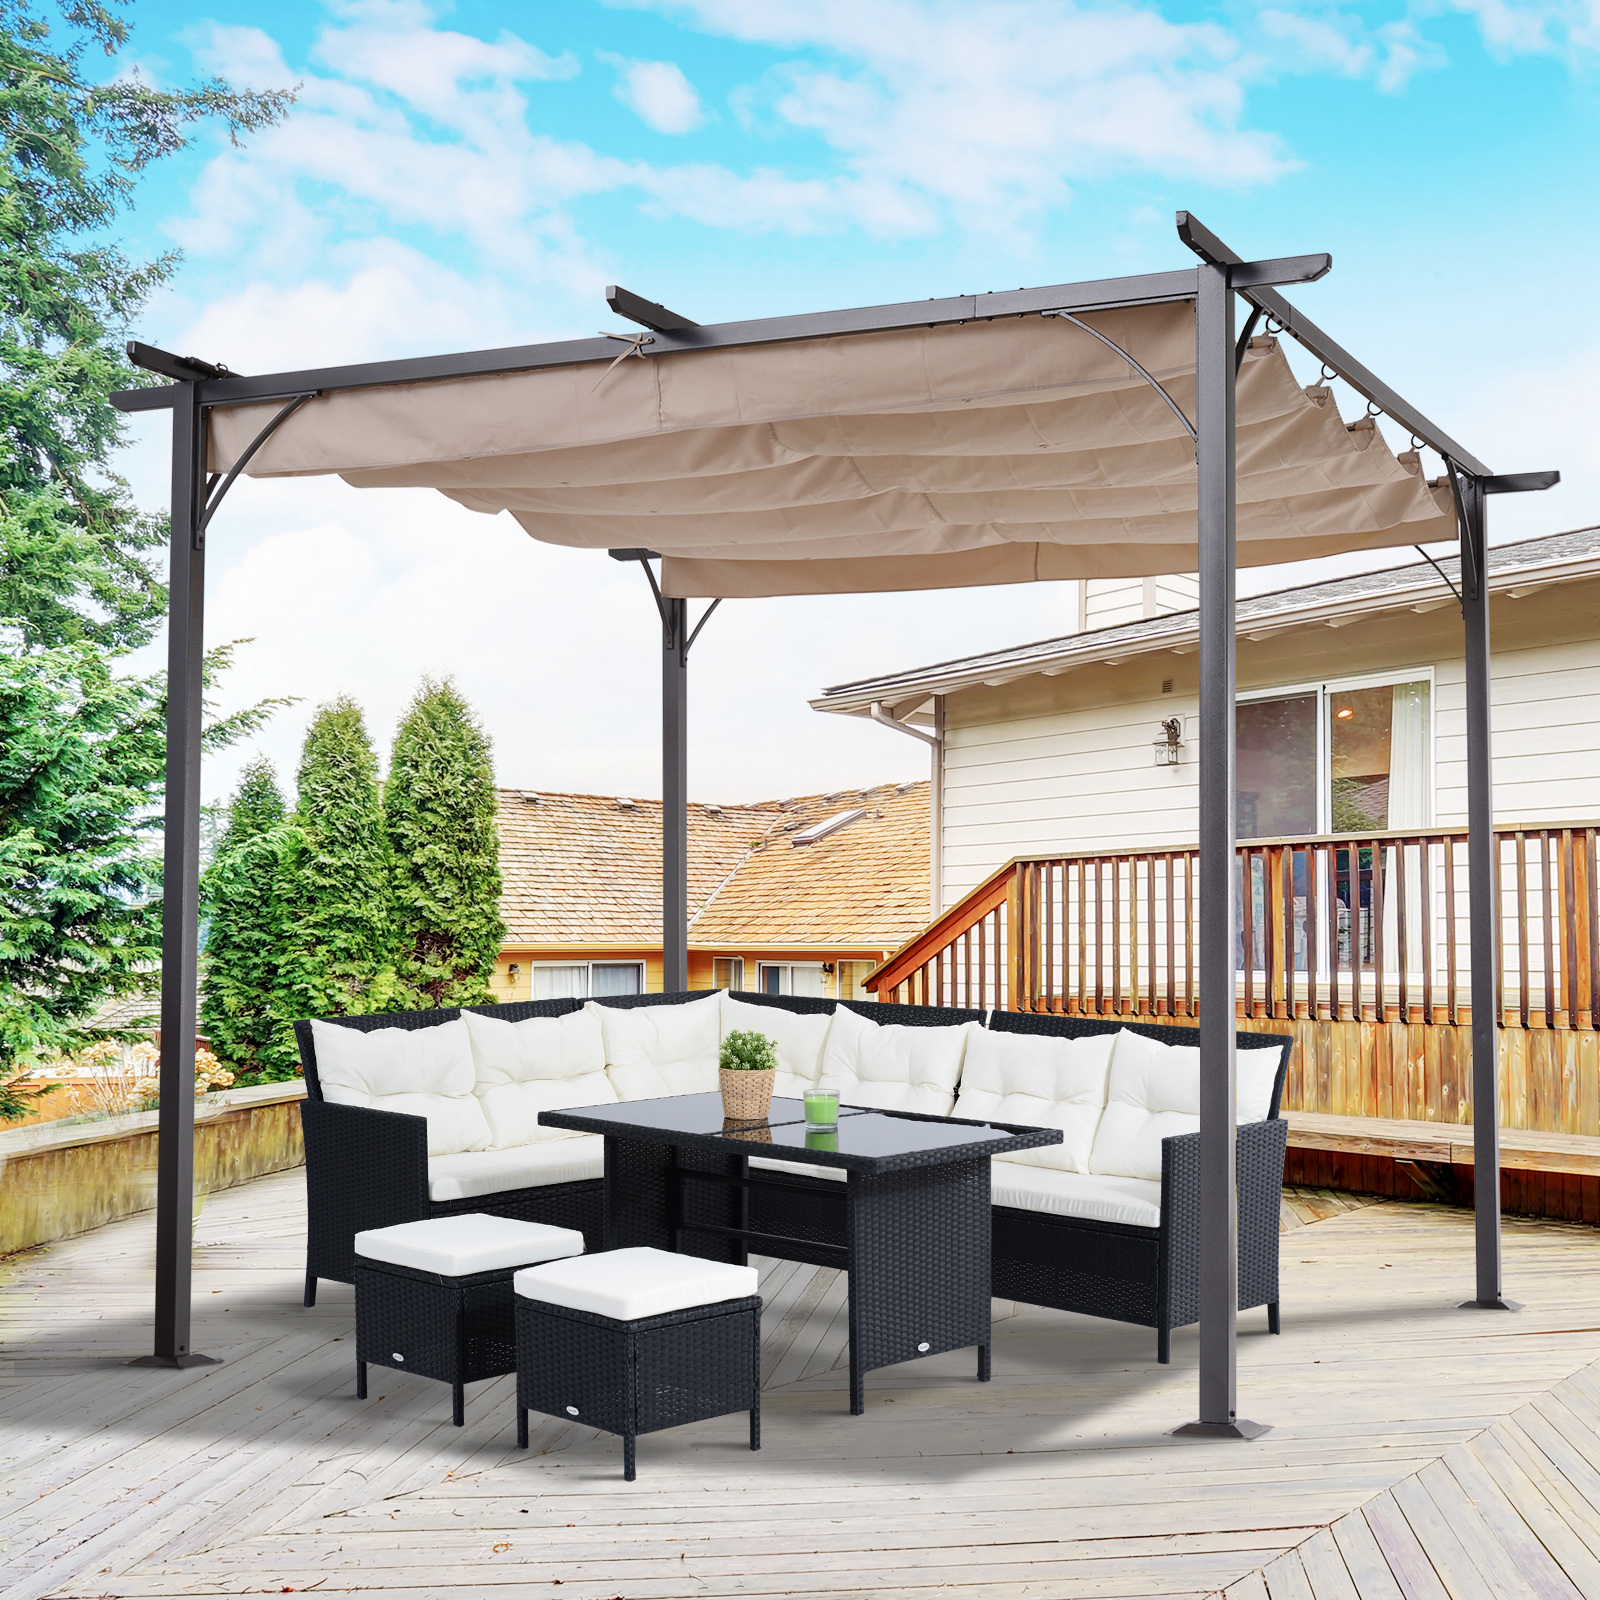 Outsunny 10' Retractable Awning Cover Modern Archway Sun ...